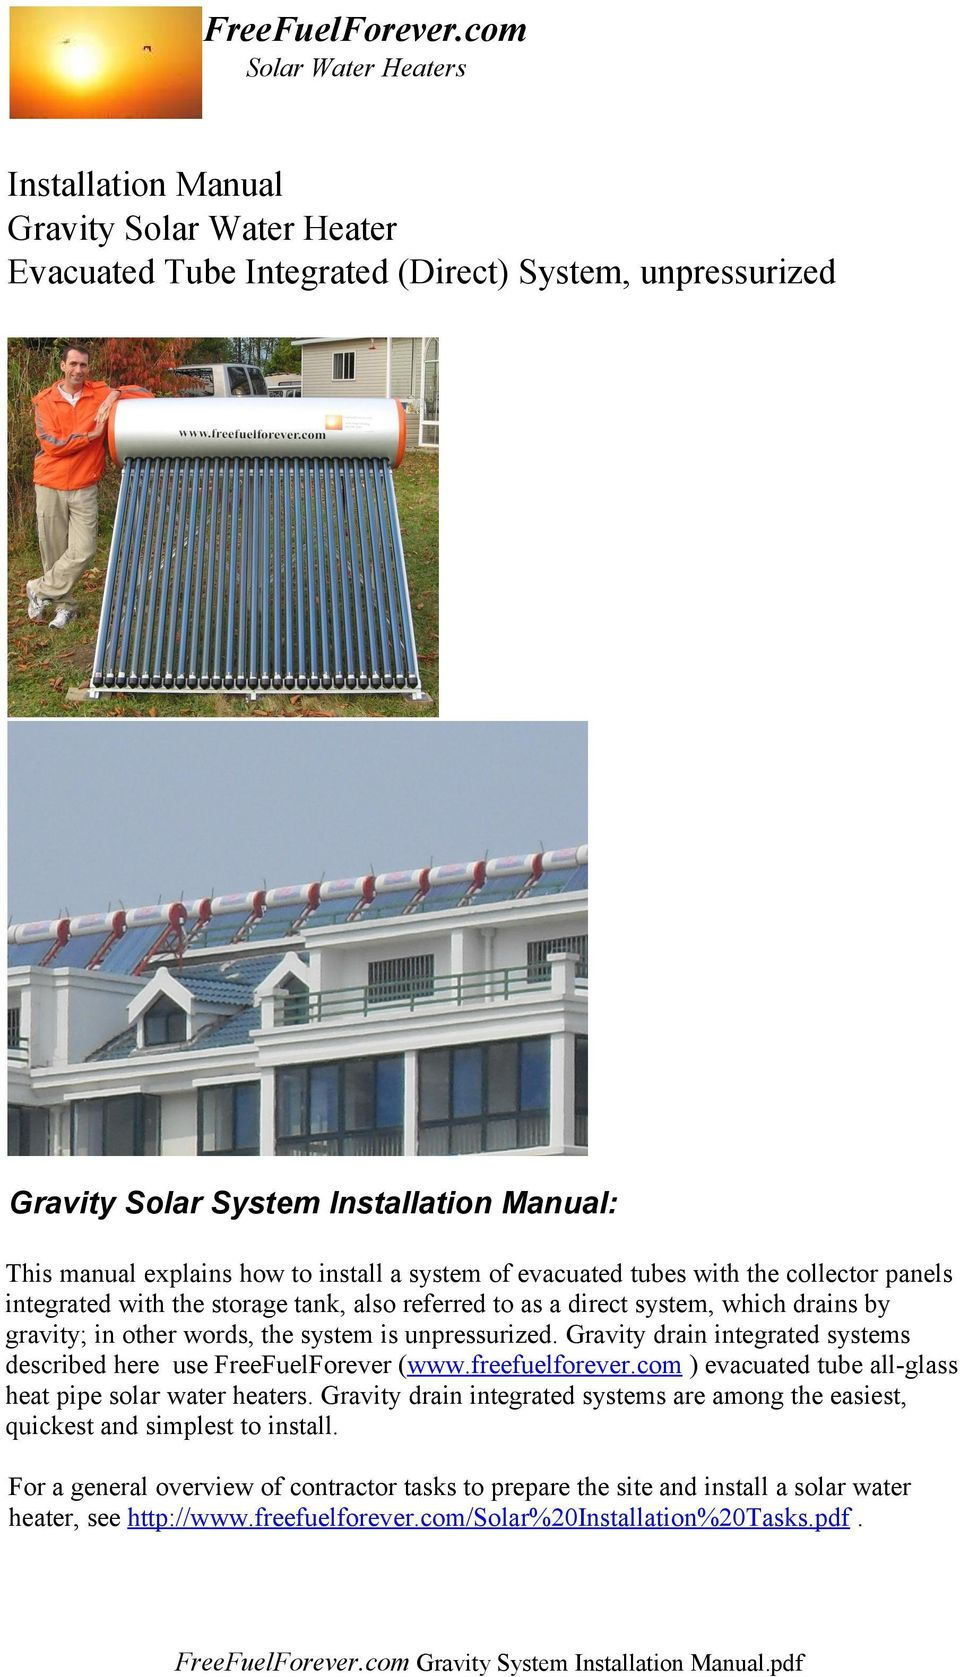 Gravity drain integrated systems described here use FreeFuelForever (www.freefuelforever.com ) evacuated tube all-glass heat pipe solar water heaters.